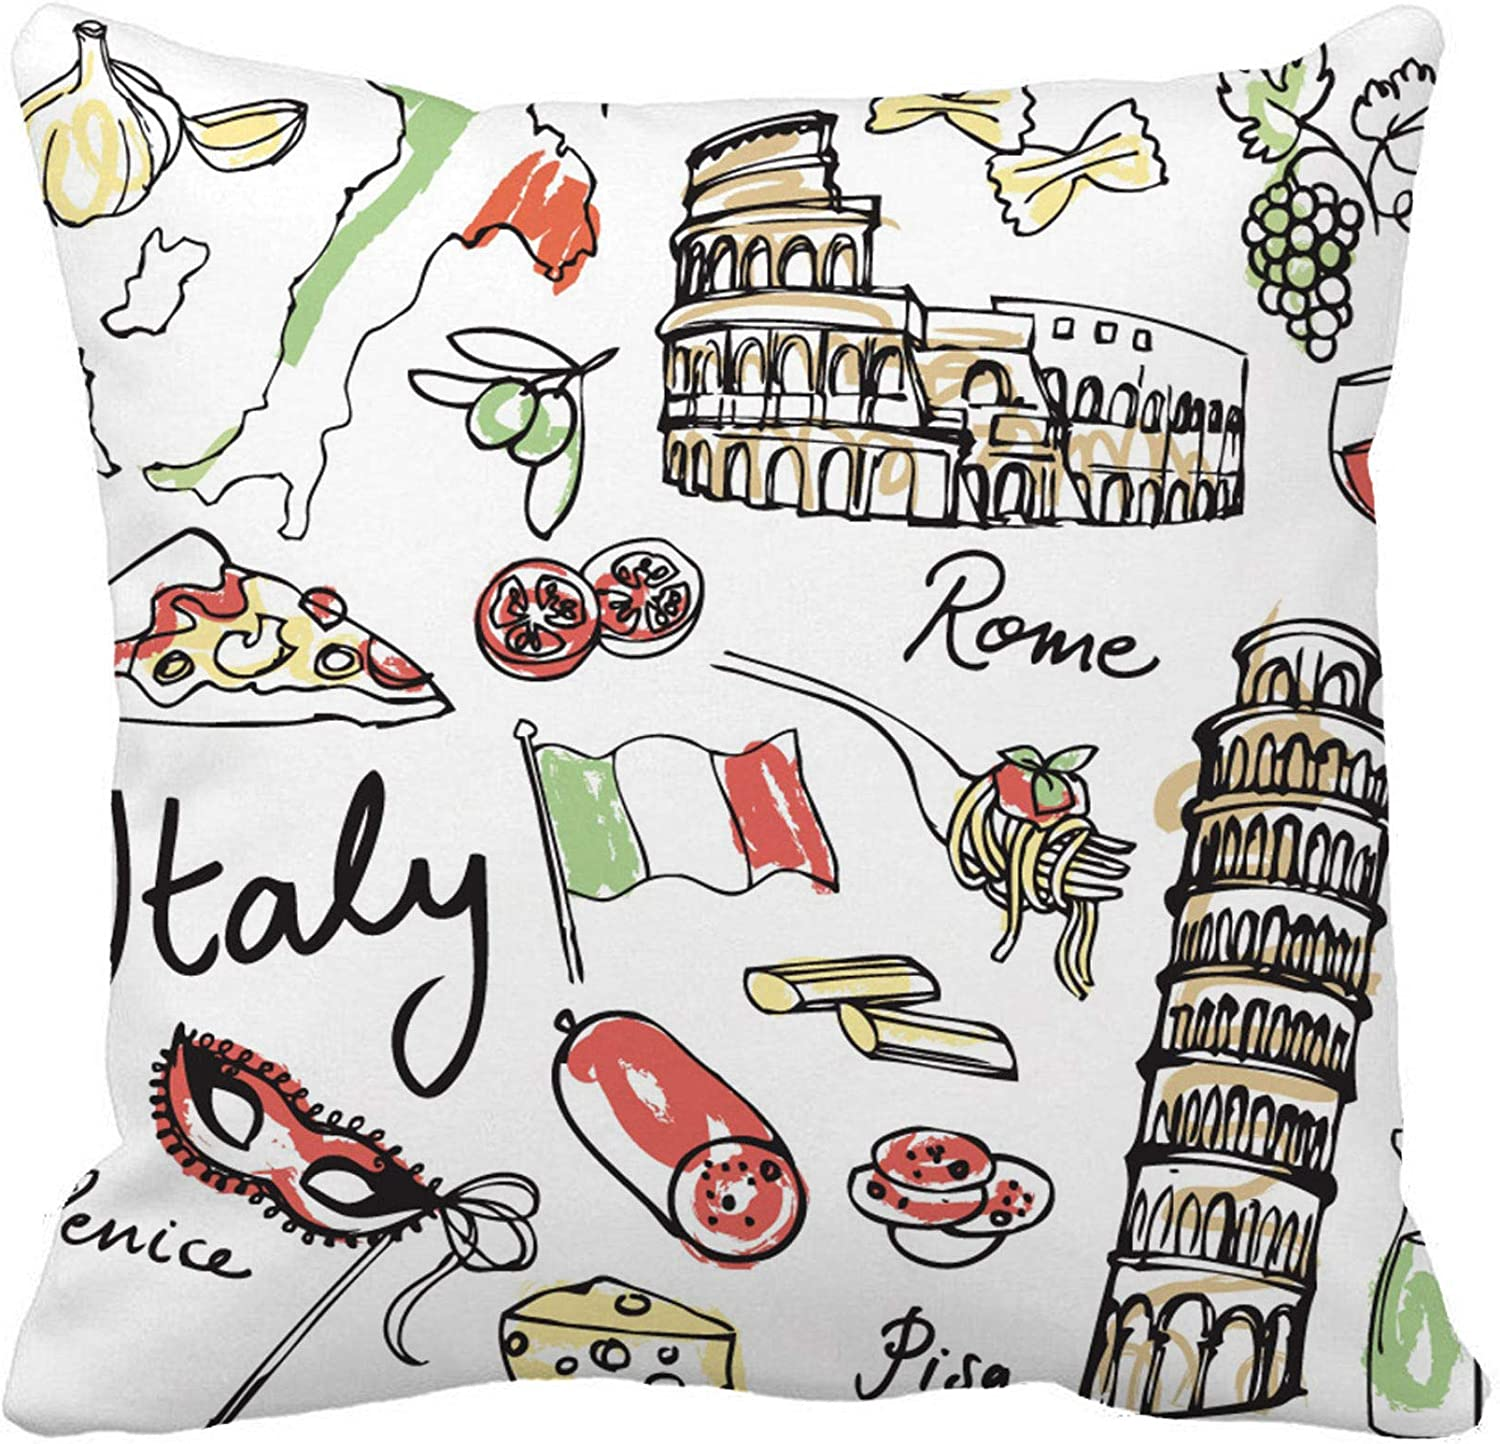 Awowee Throw Pillow Cover Italian of Italy Food Doodle Sketch Flag Rome Spaghetti 18x18 Inches Pillowcase Home Decorative Square Pillow Case Cushion Cover